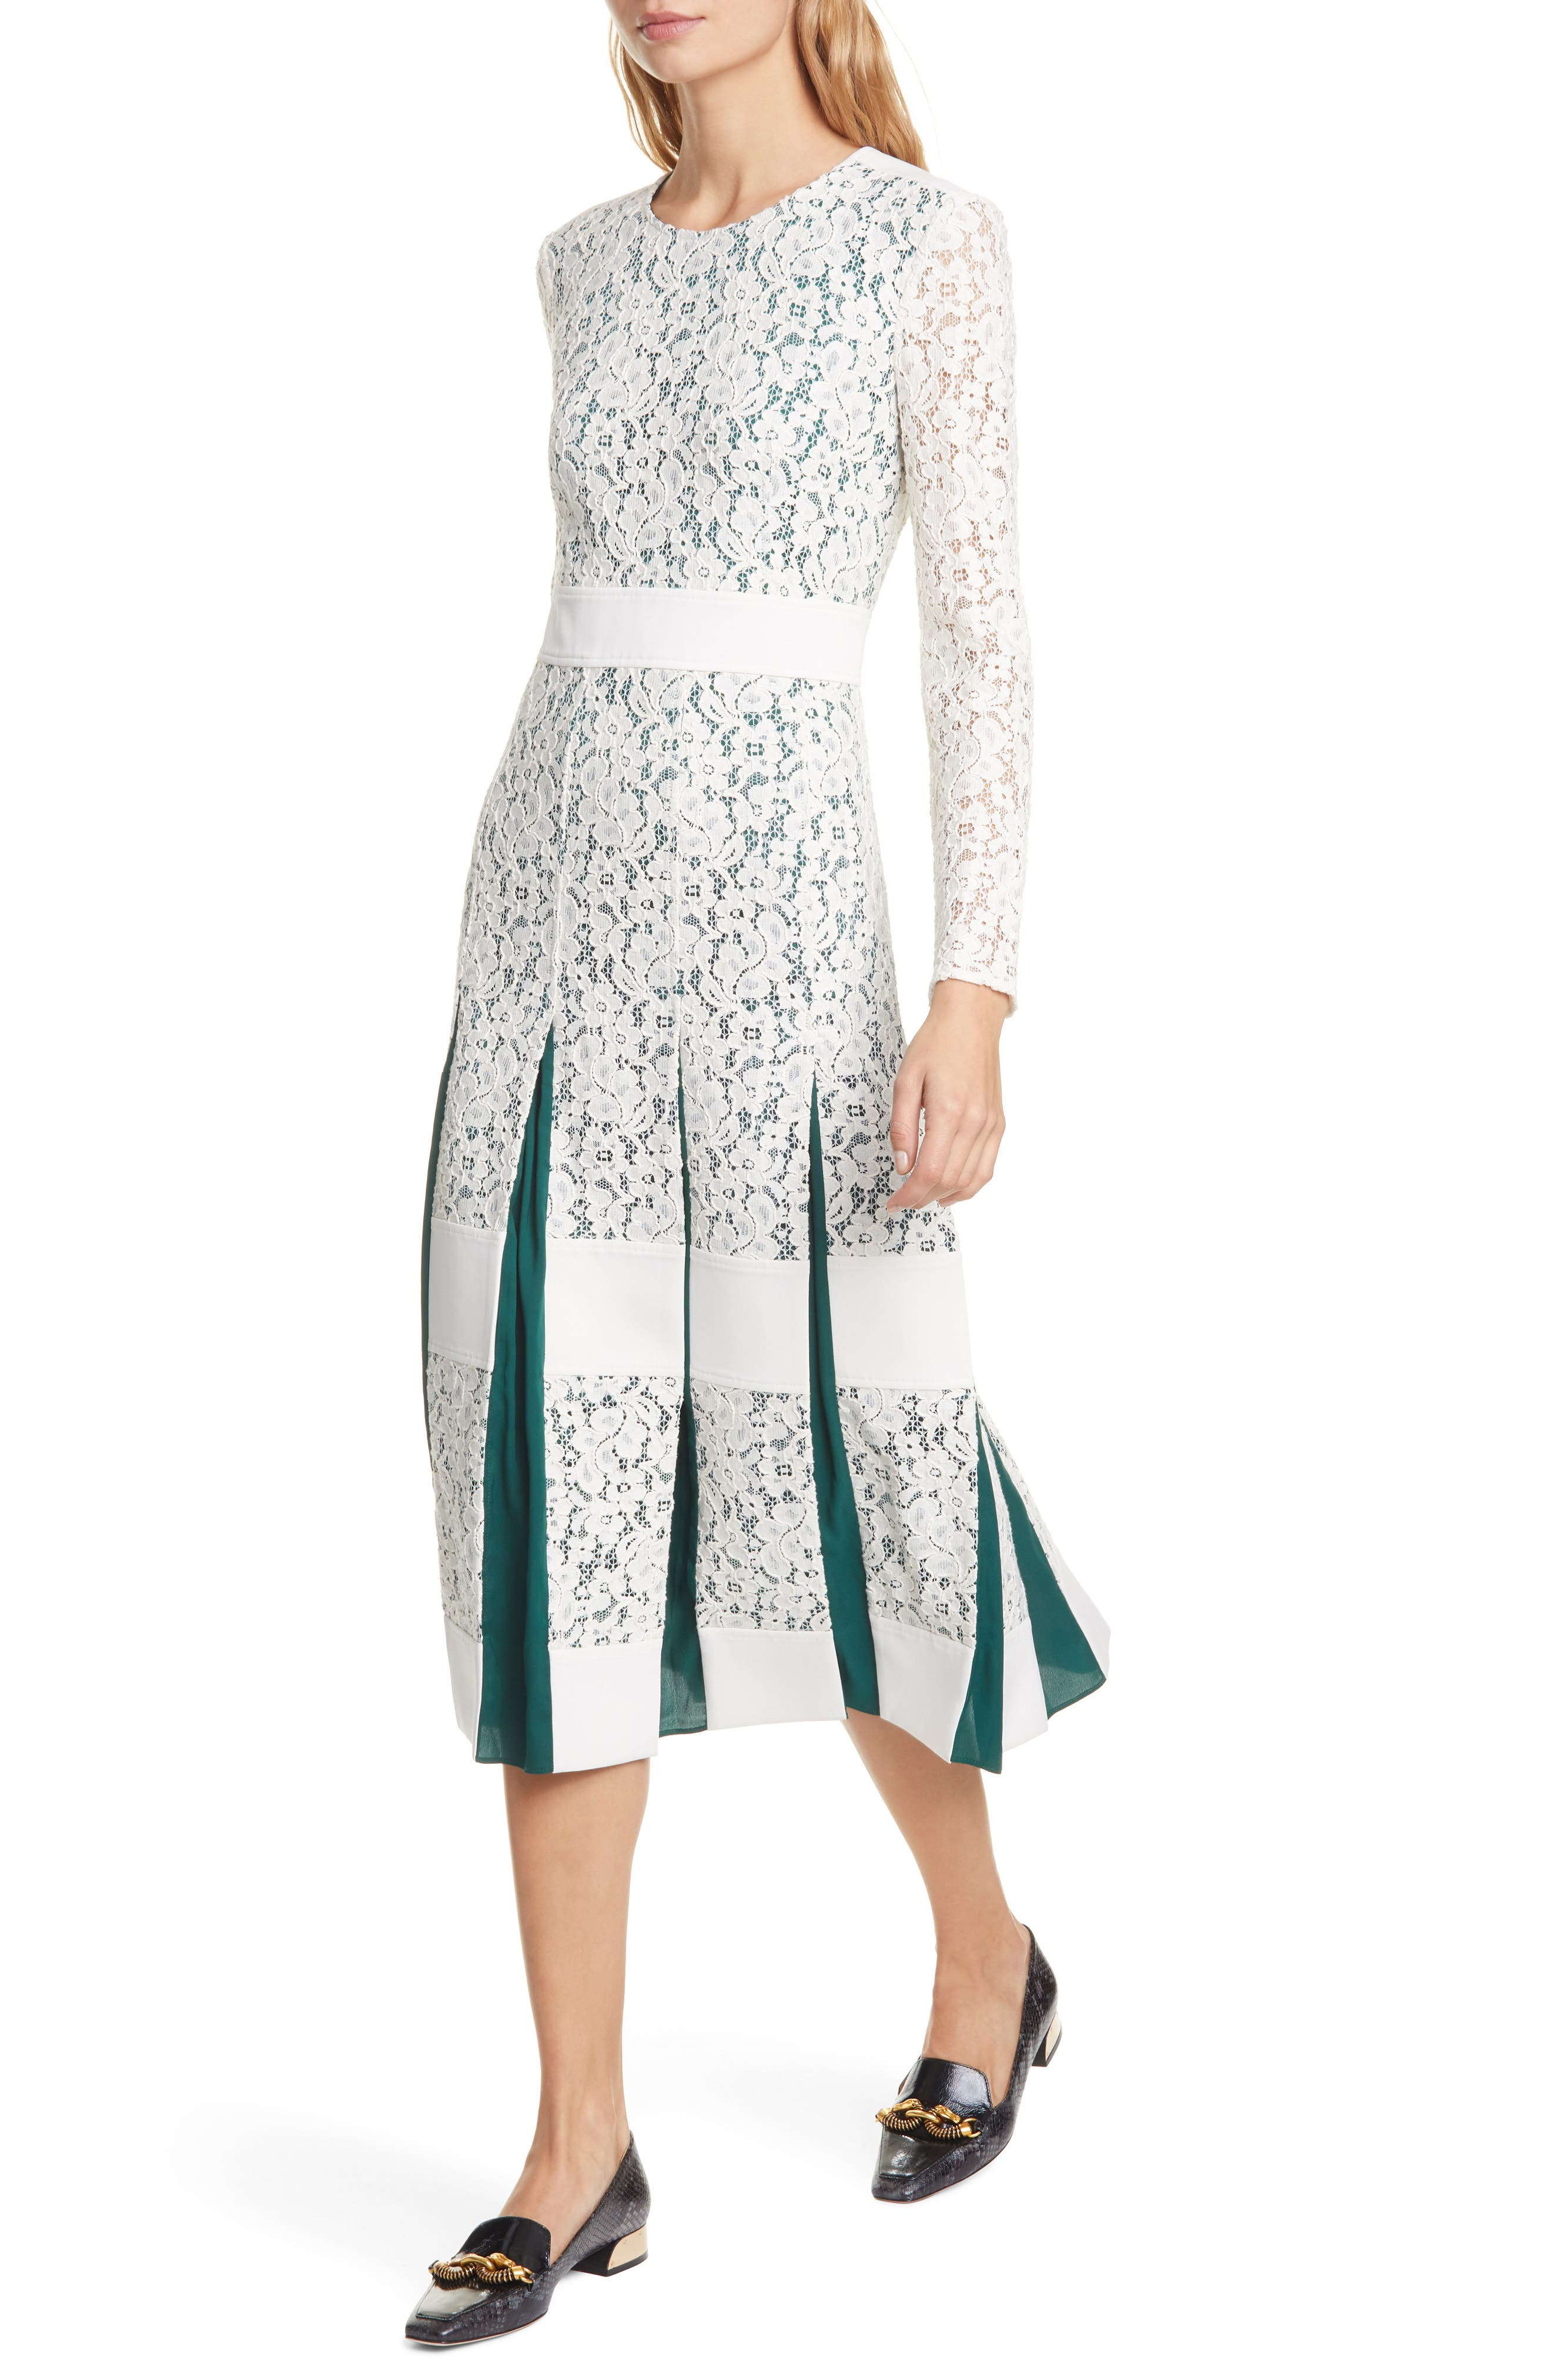 Tory Burch Dresses Long Sleeve Pleated Lace Midi Dress